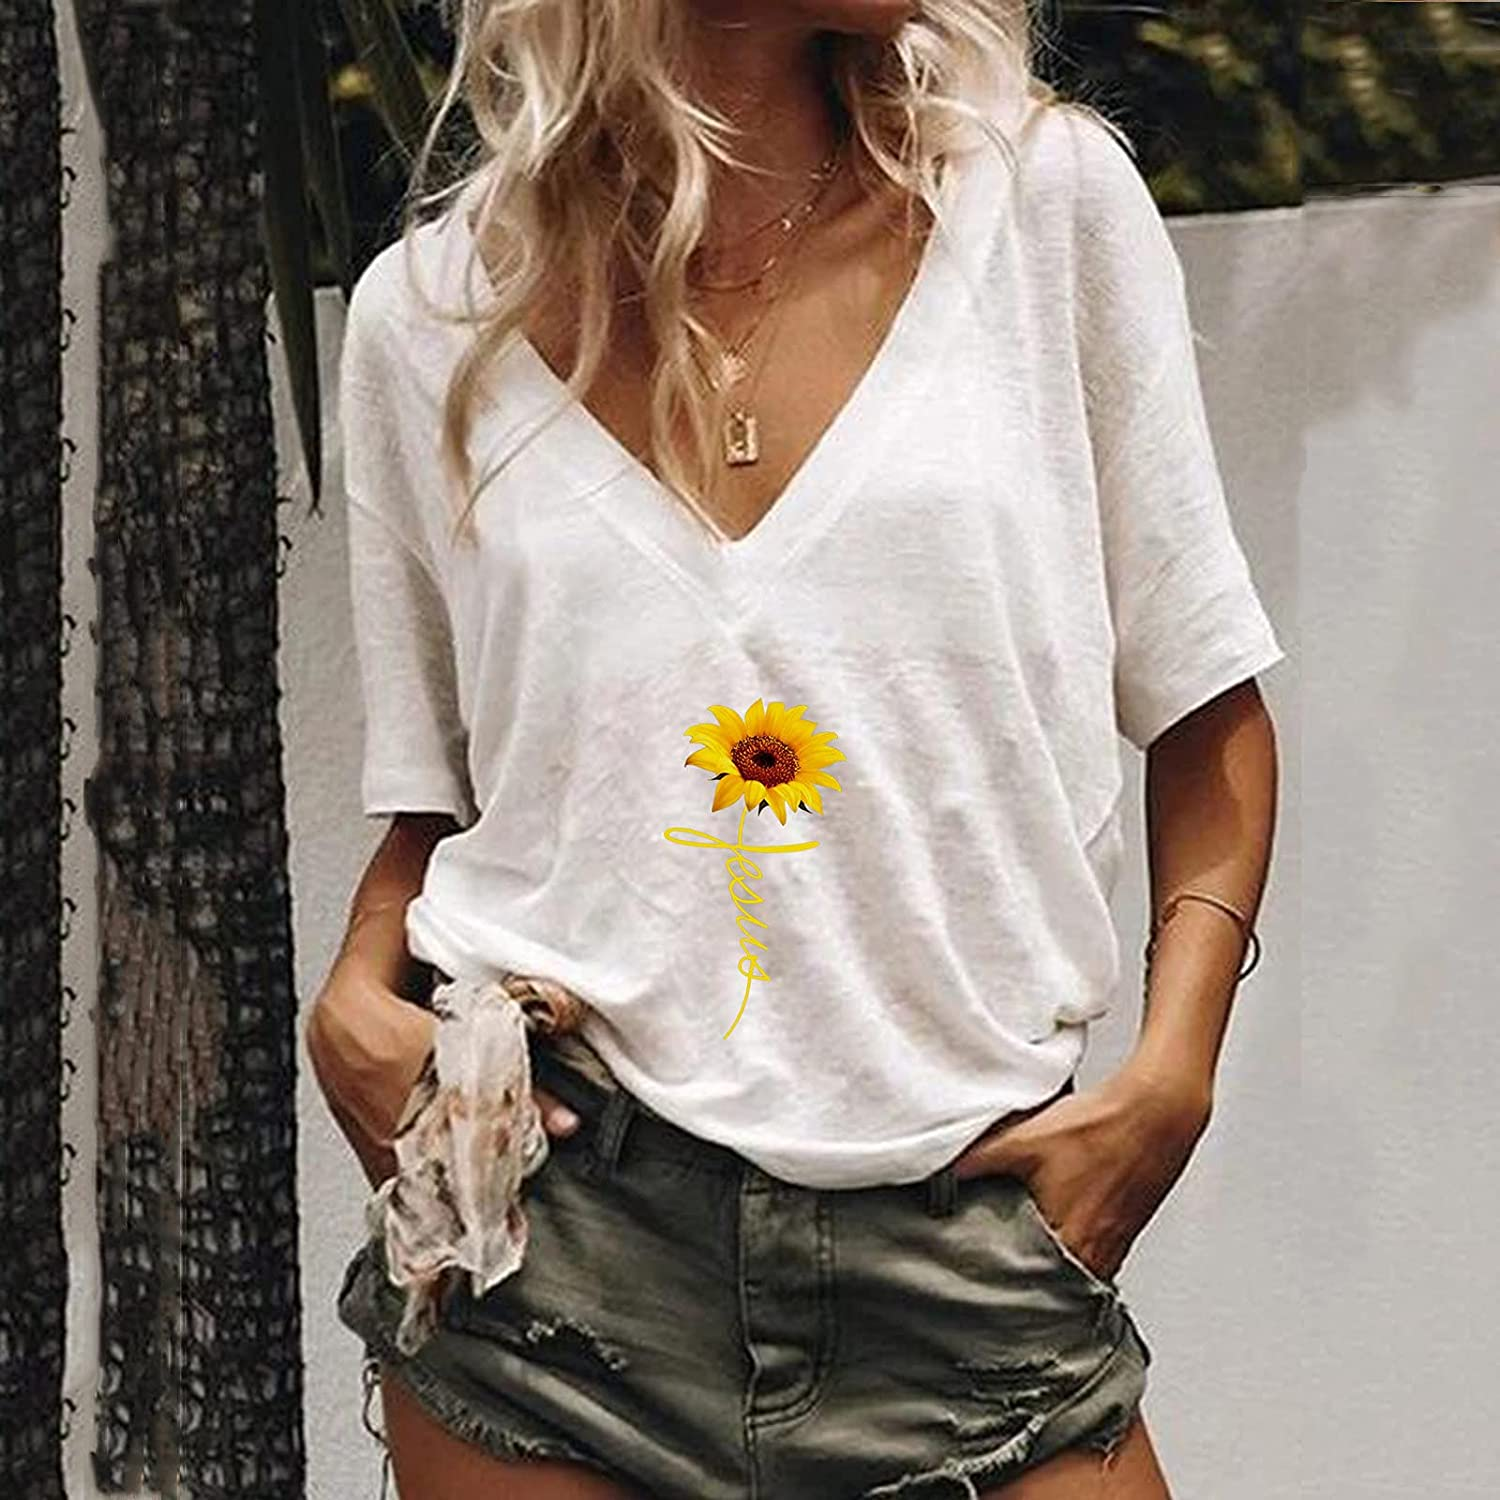 Flurries Plus Size Tops for Women Sleeveless Womens Fashion Top Sexy Vest Soft Shirt V-Neck Summer Casual Tunic